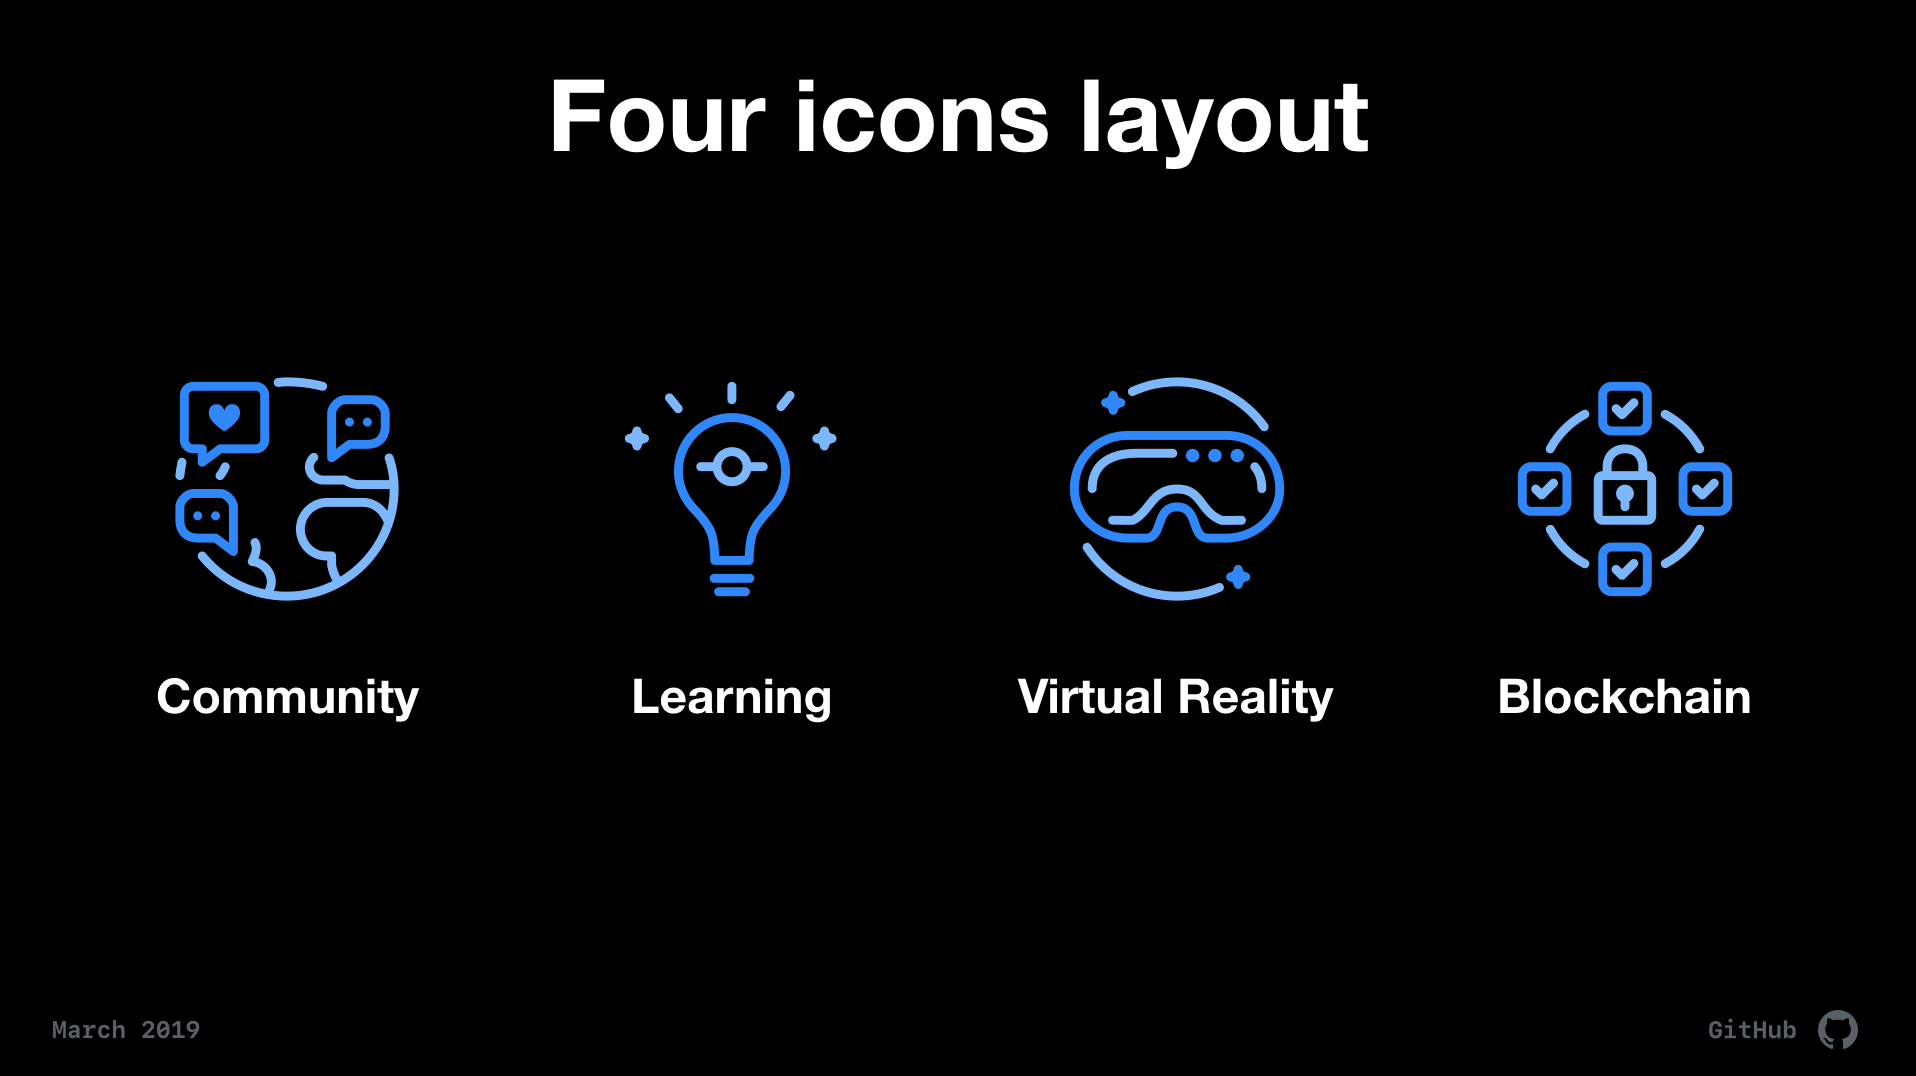 Icon pairing example with community pairing with a globe, learning with a lightbulb, virtual reality with a vr headset, and blockchain with lock surrounded by connected checkboxes in a circle